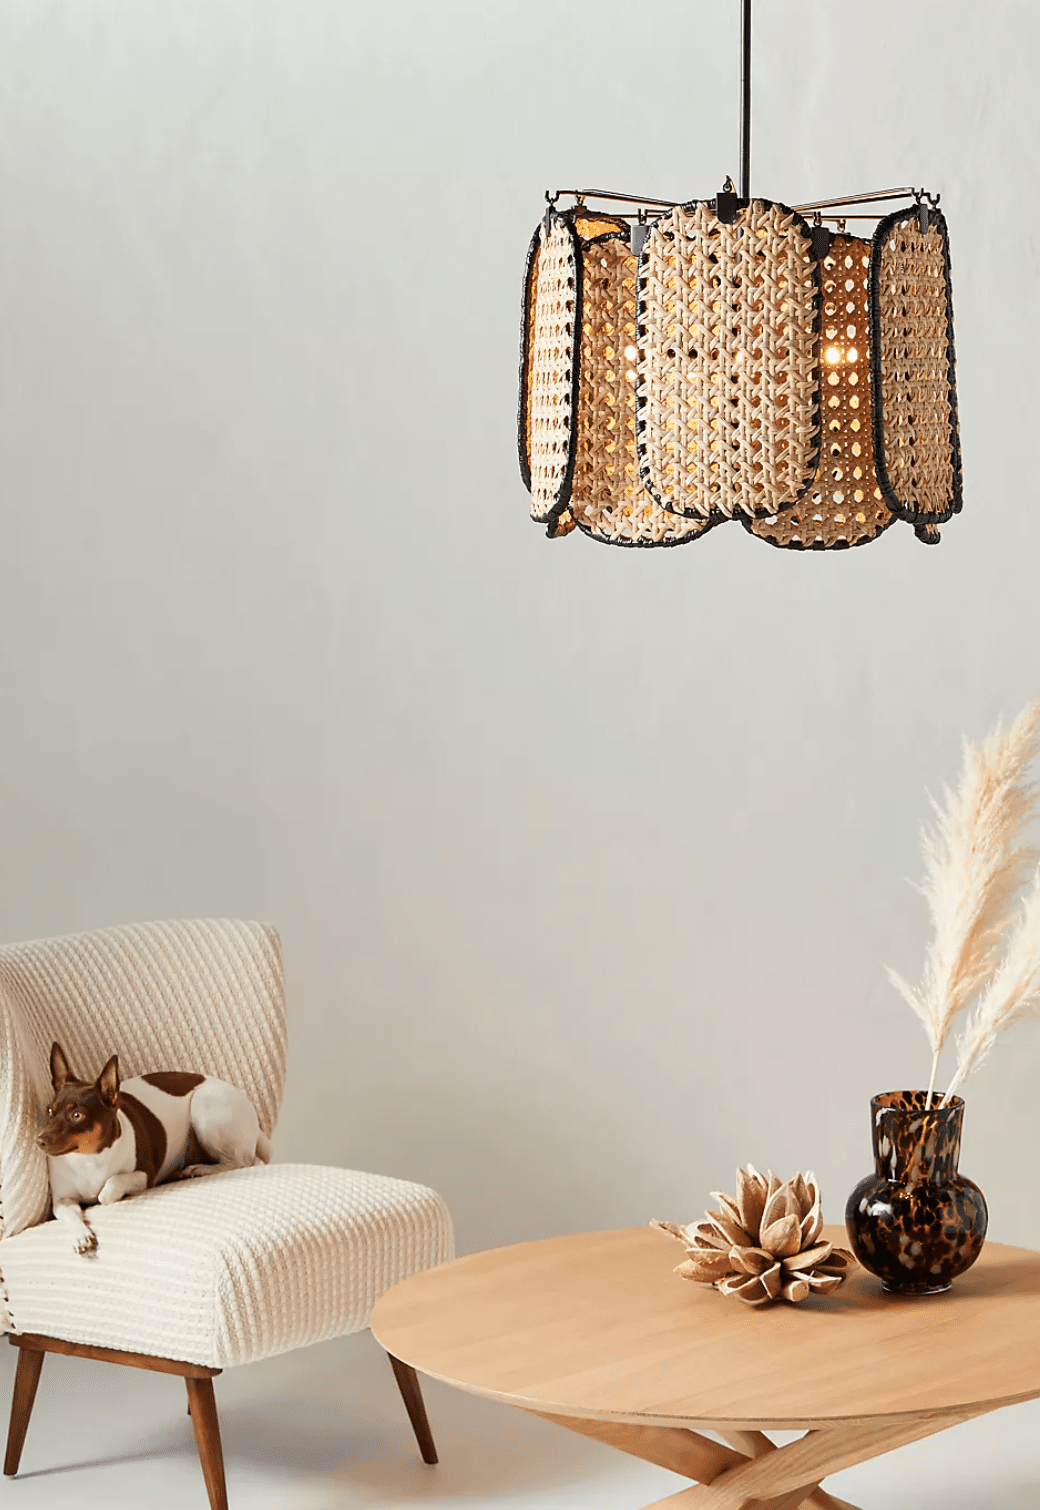 A midcentury modern rattan chandelier, currently for sale at Anthropologie